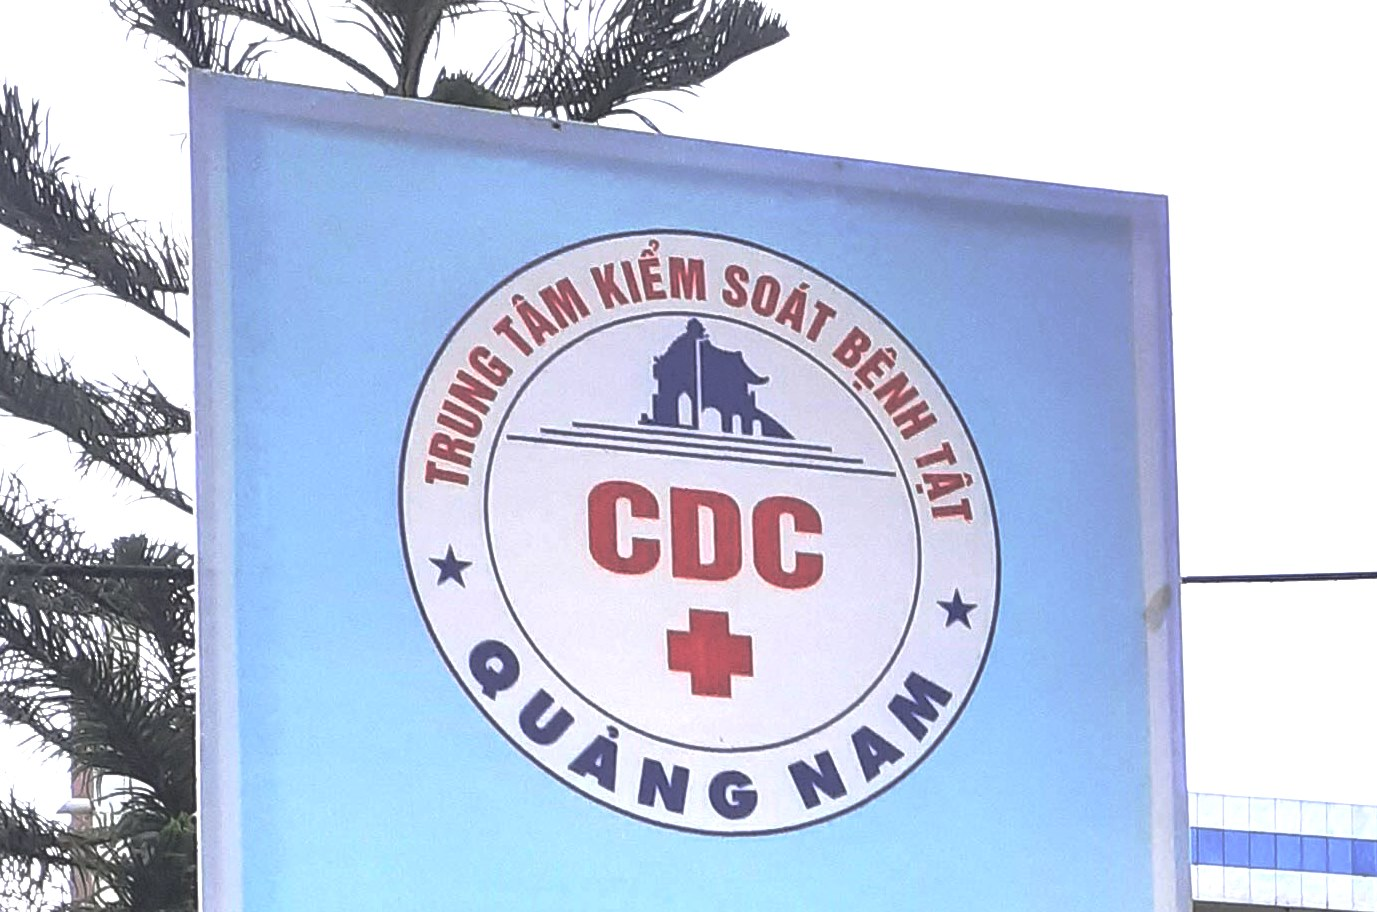 This image shows a sign at the Center for Disease Control in Quang Nam Province, Vietnam. Photo: Stivi Cooke